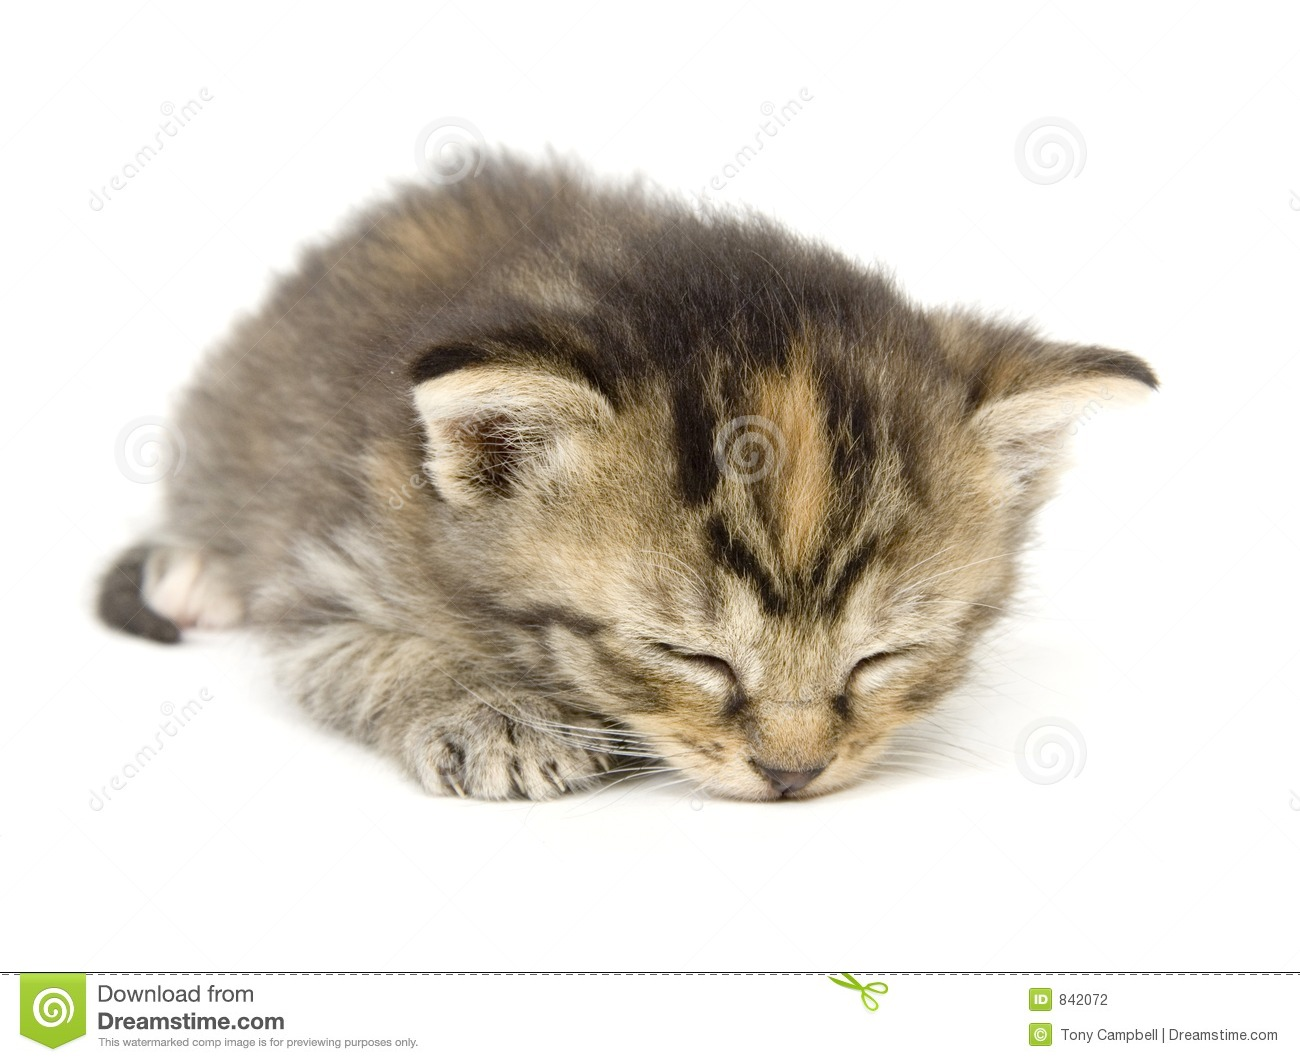 Kitty taking a cat nap on white background